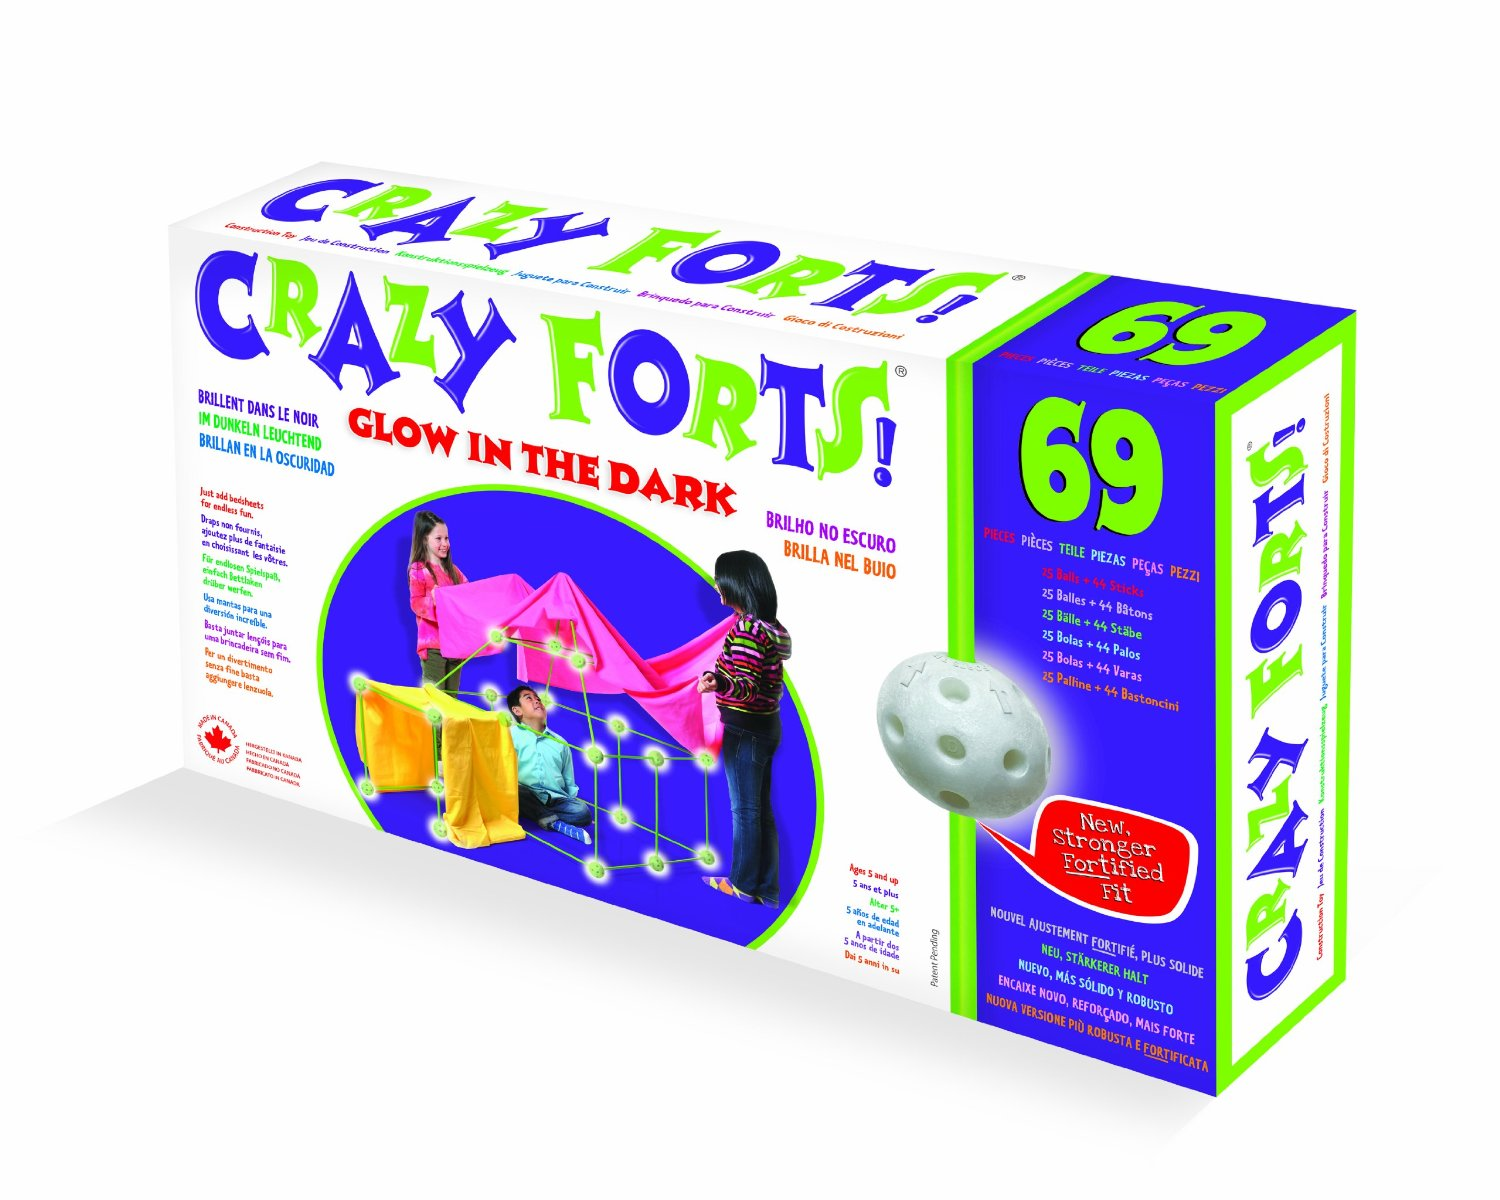 Crazy Forts 69 Piece Set Glow in the Dark